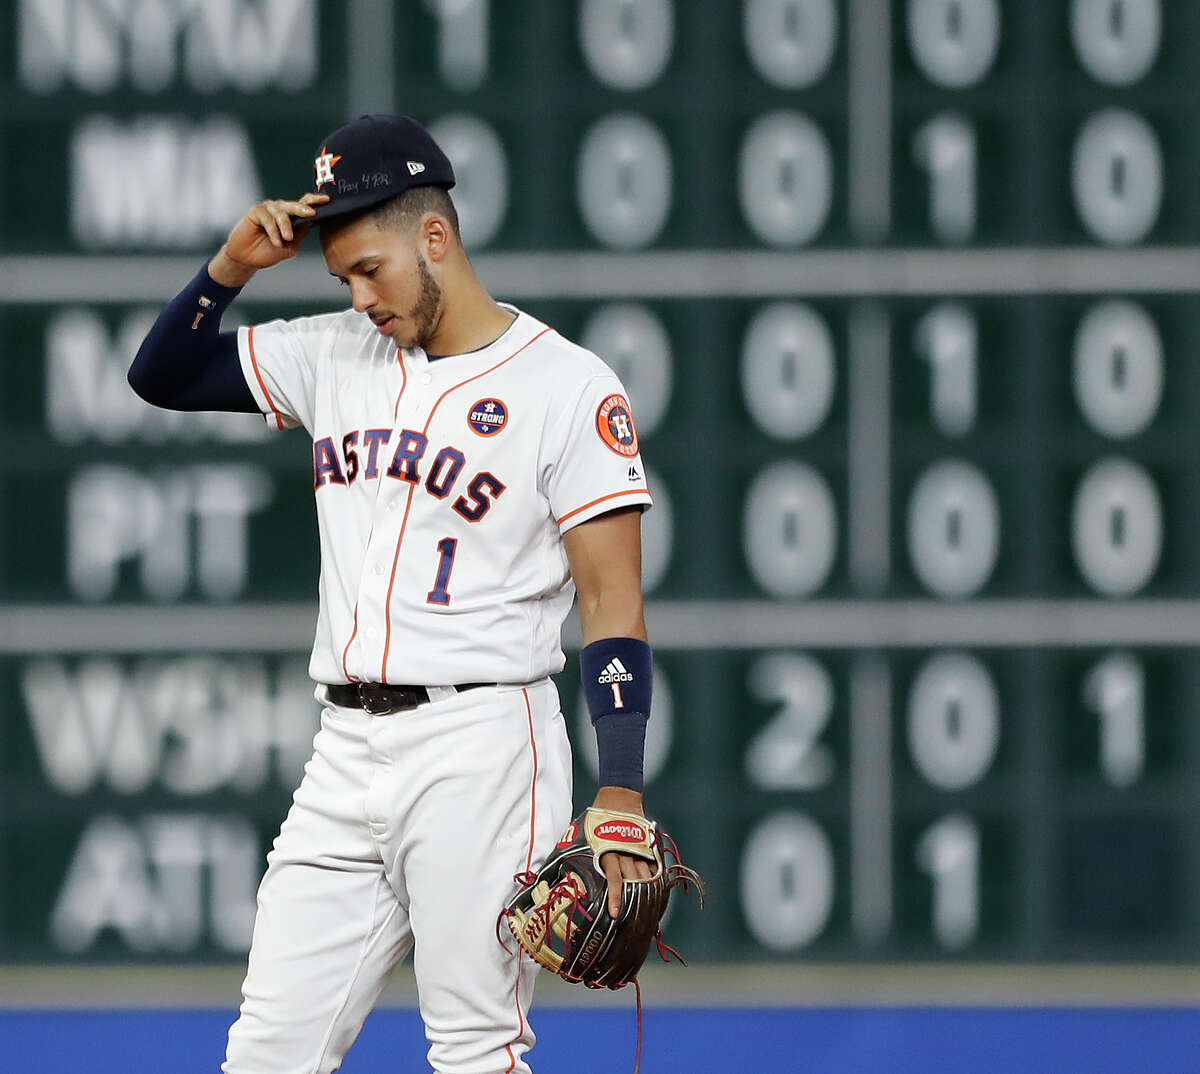 PHOTOS: A look at Carlos Correa's Puerto Rico-themed cleats Houston Astros shortstop Carlos Correa (1) wears cleats with a Puerto Rican flag on them during the fourth inning of an MLB baseball game at Minute Maid Park, Tuesday, Sept. 19, 2017, in Houston. Browse through the photos above for a look at the special cleats Carlos Correa wore during Tuesday's game.